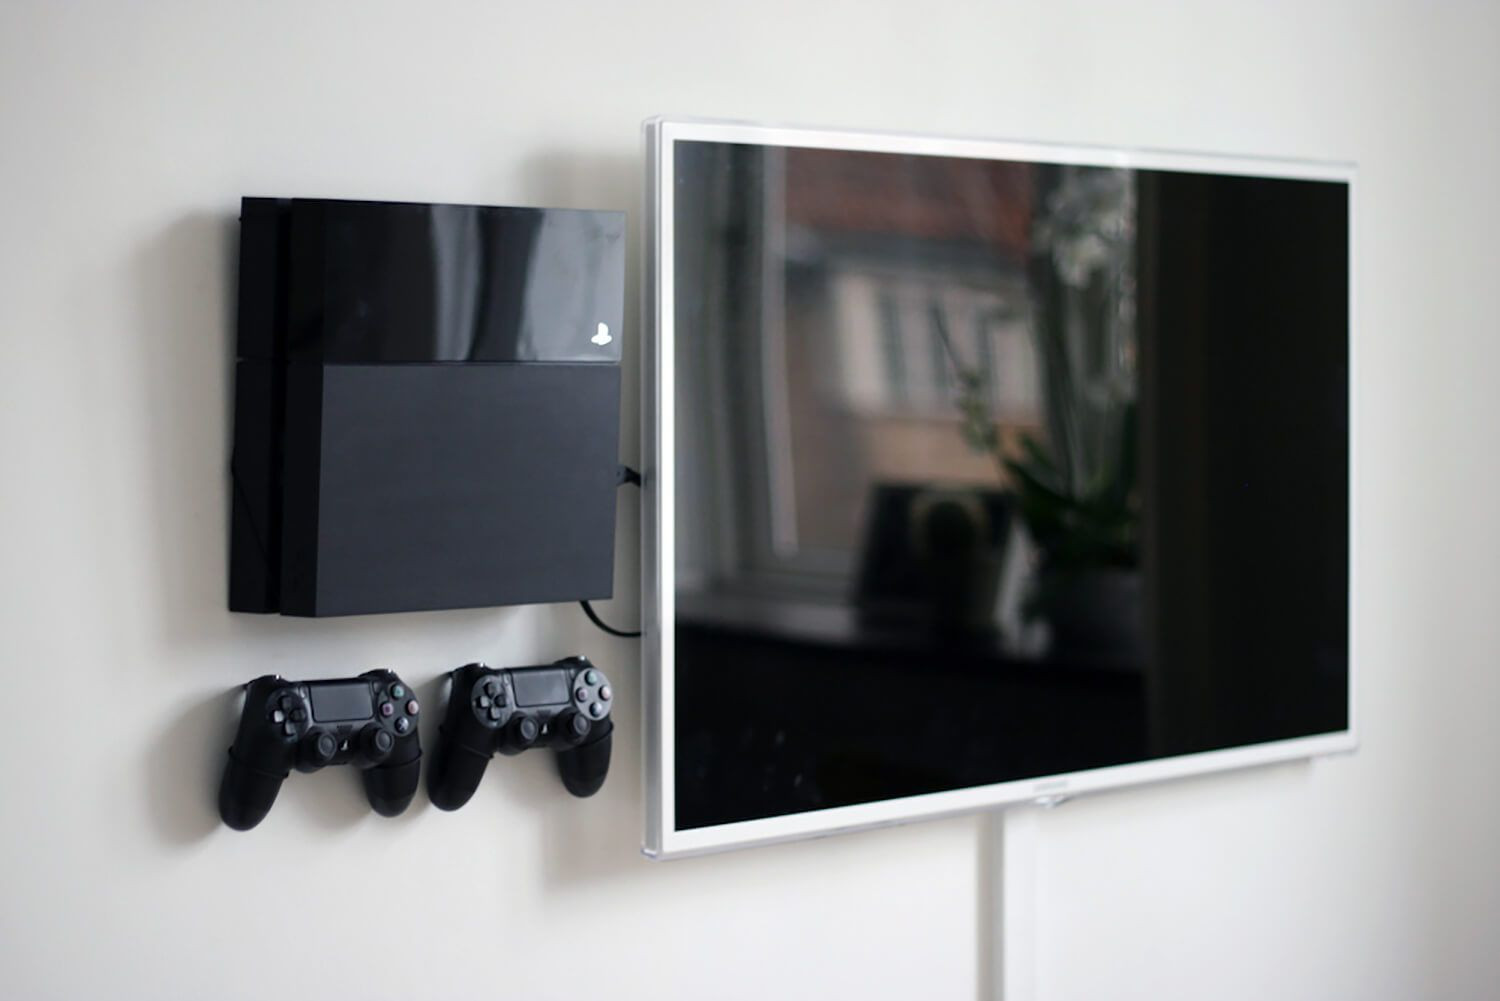 Best ideas about Ps4 Wall Mount DIY . Save or Pin PlayStation 4 original wall mount For the Home Now.